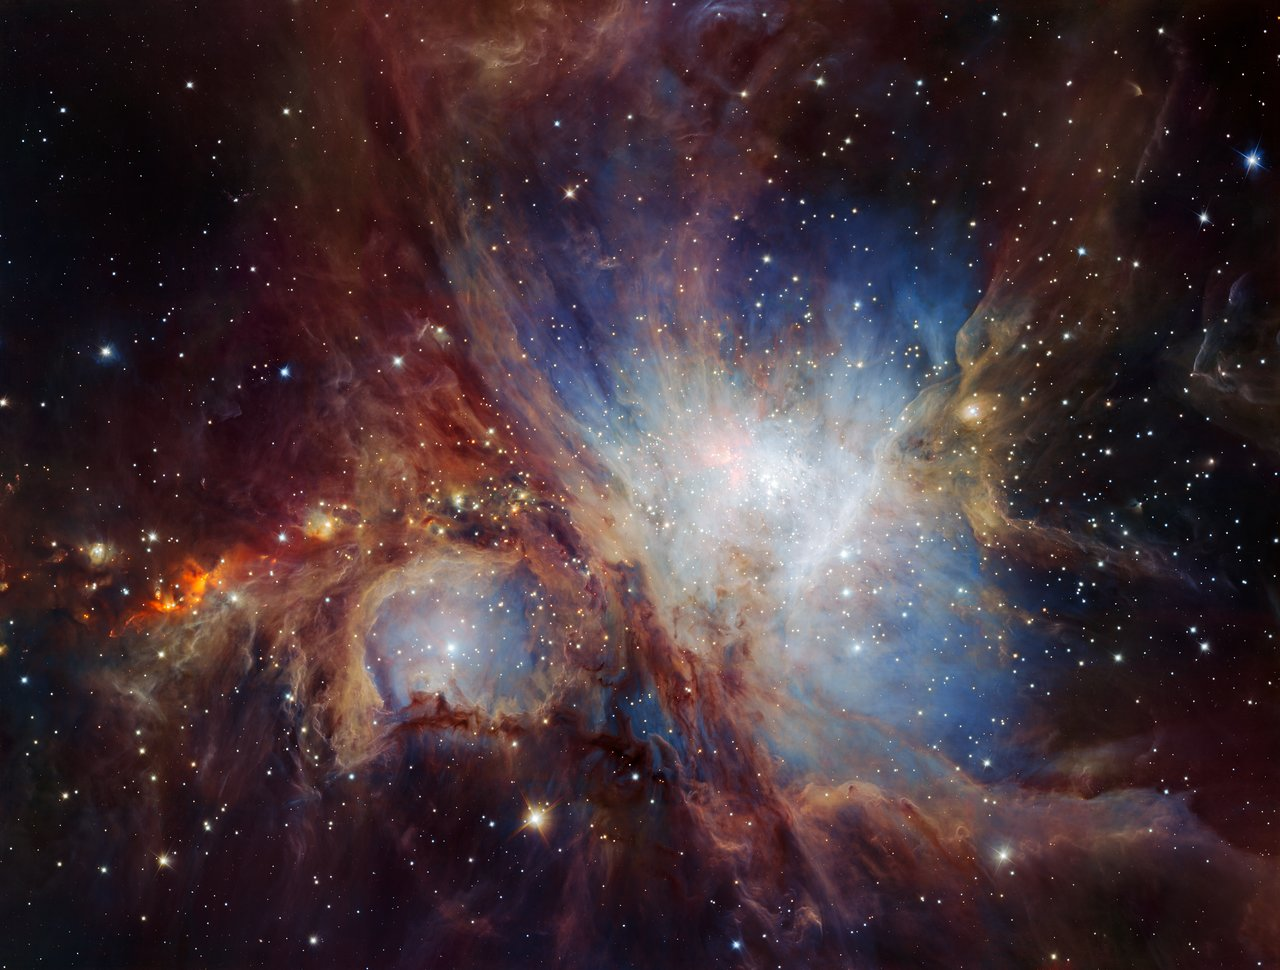 This spectacular image of the Orion Nebula star-formation region was obtained from multiple exposures using the HAWK-I infrared camera on ESO's Very Large Telescope in Chile. This is the deepest view ever of this region and reveals more very faint planetary-mass objects than expected. – Image Credit: ESO/H. Drass et al.